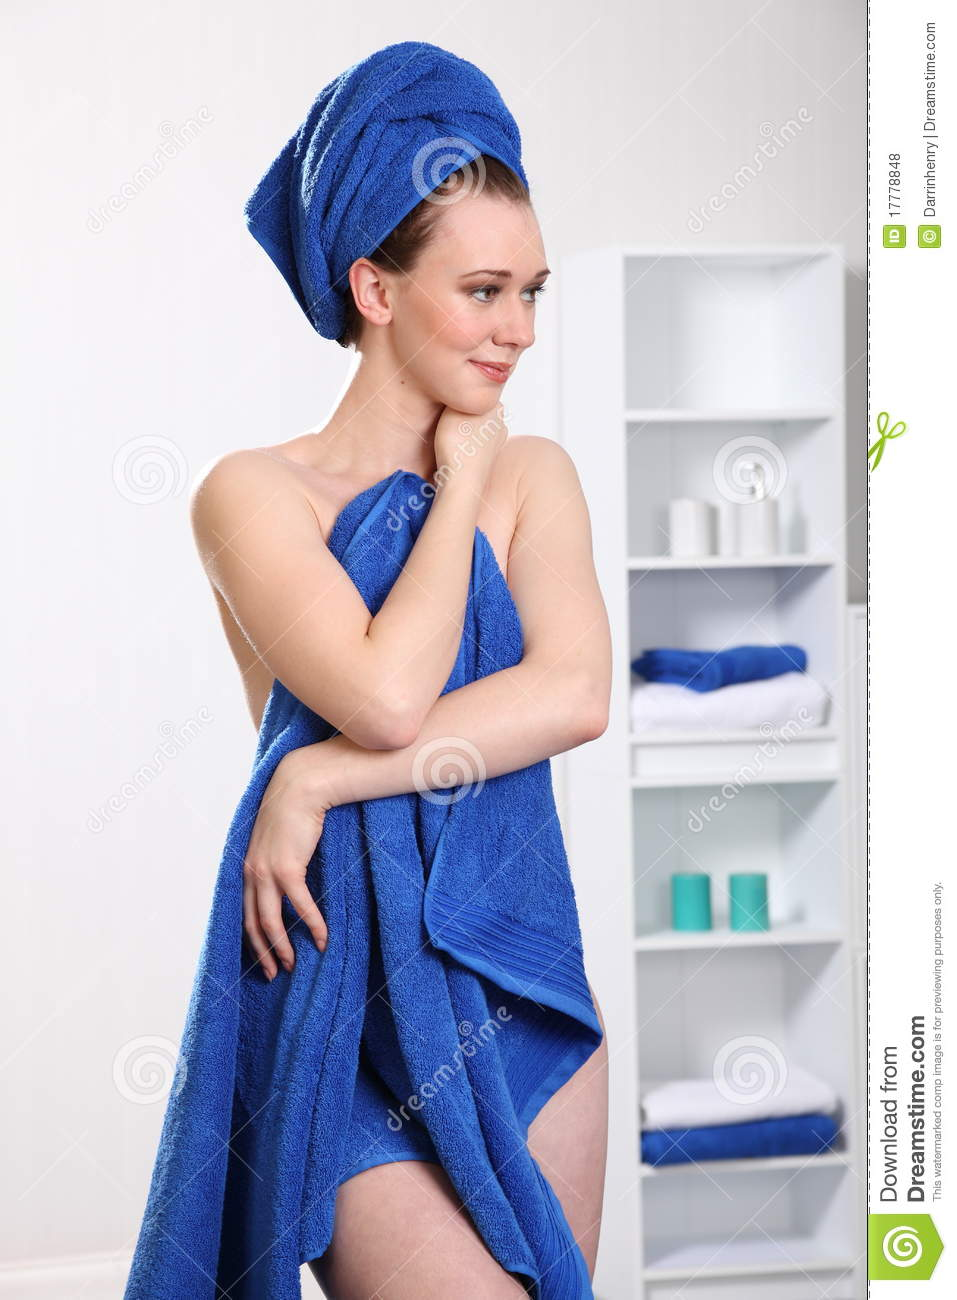 woman naked body picture shower